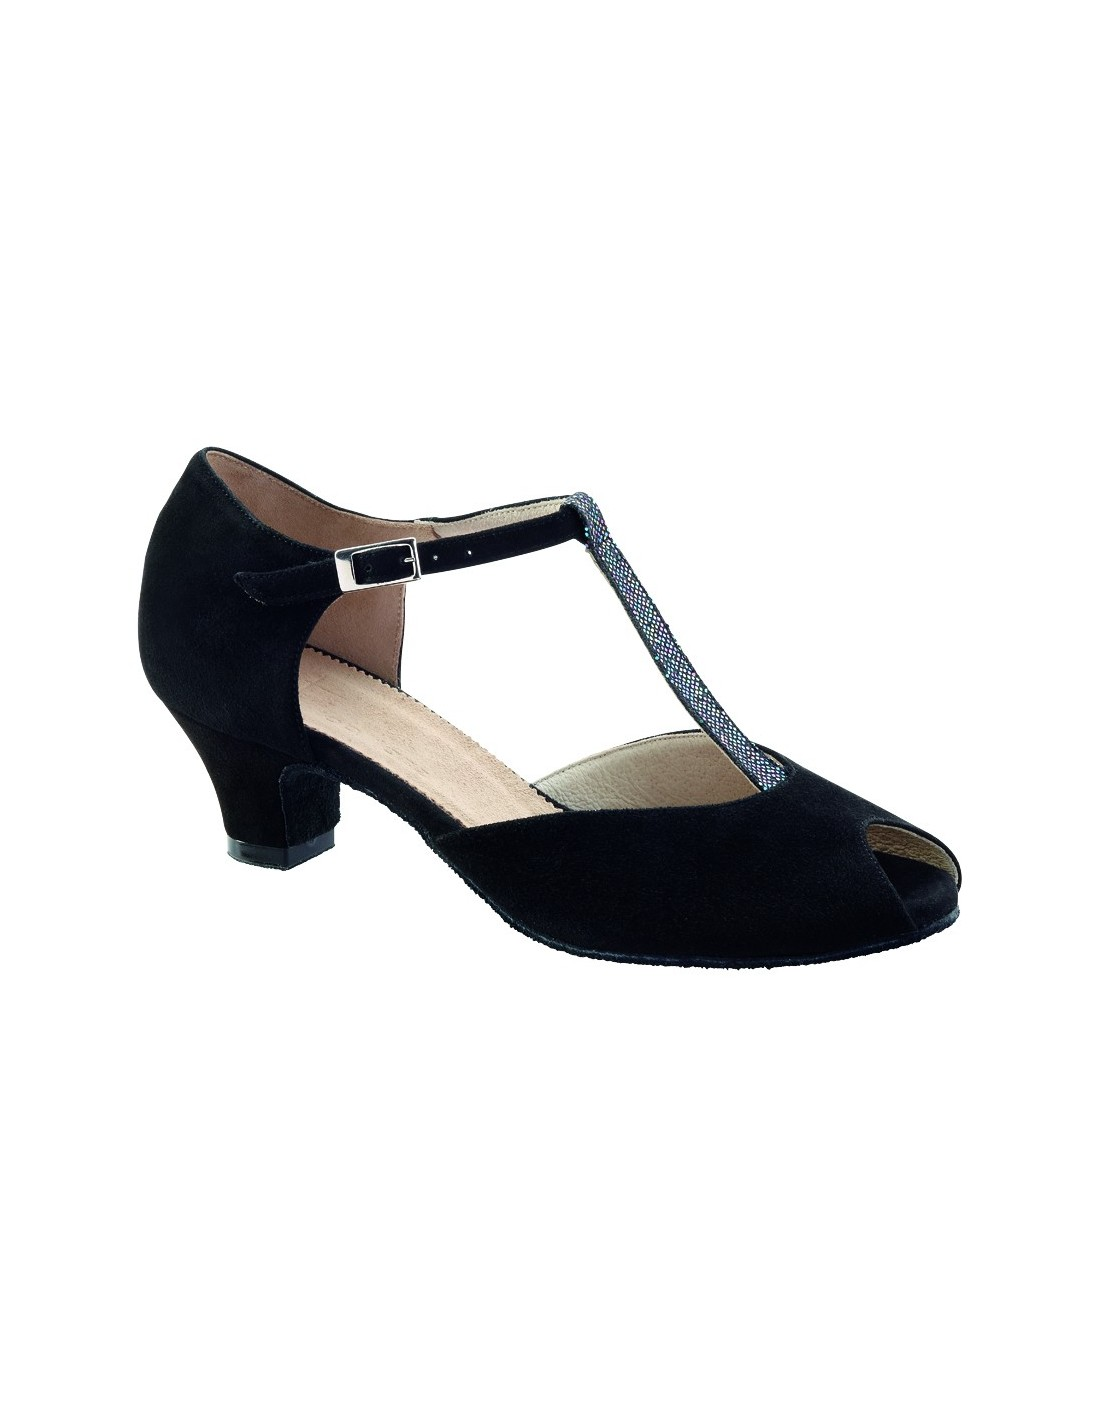 T Bar Low Heeled Black Leather Shoe